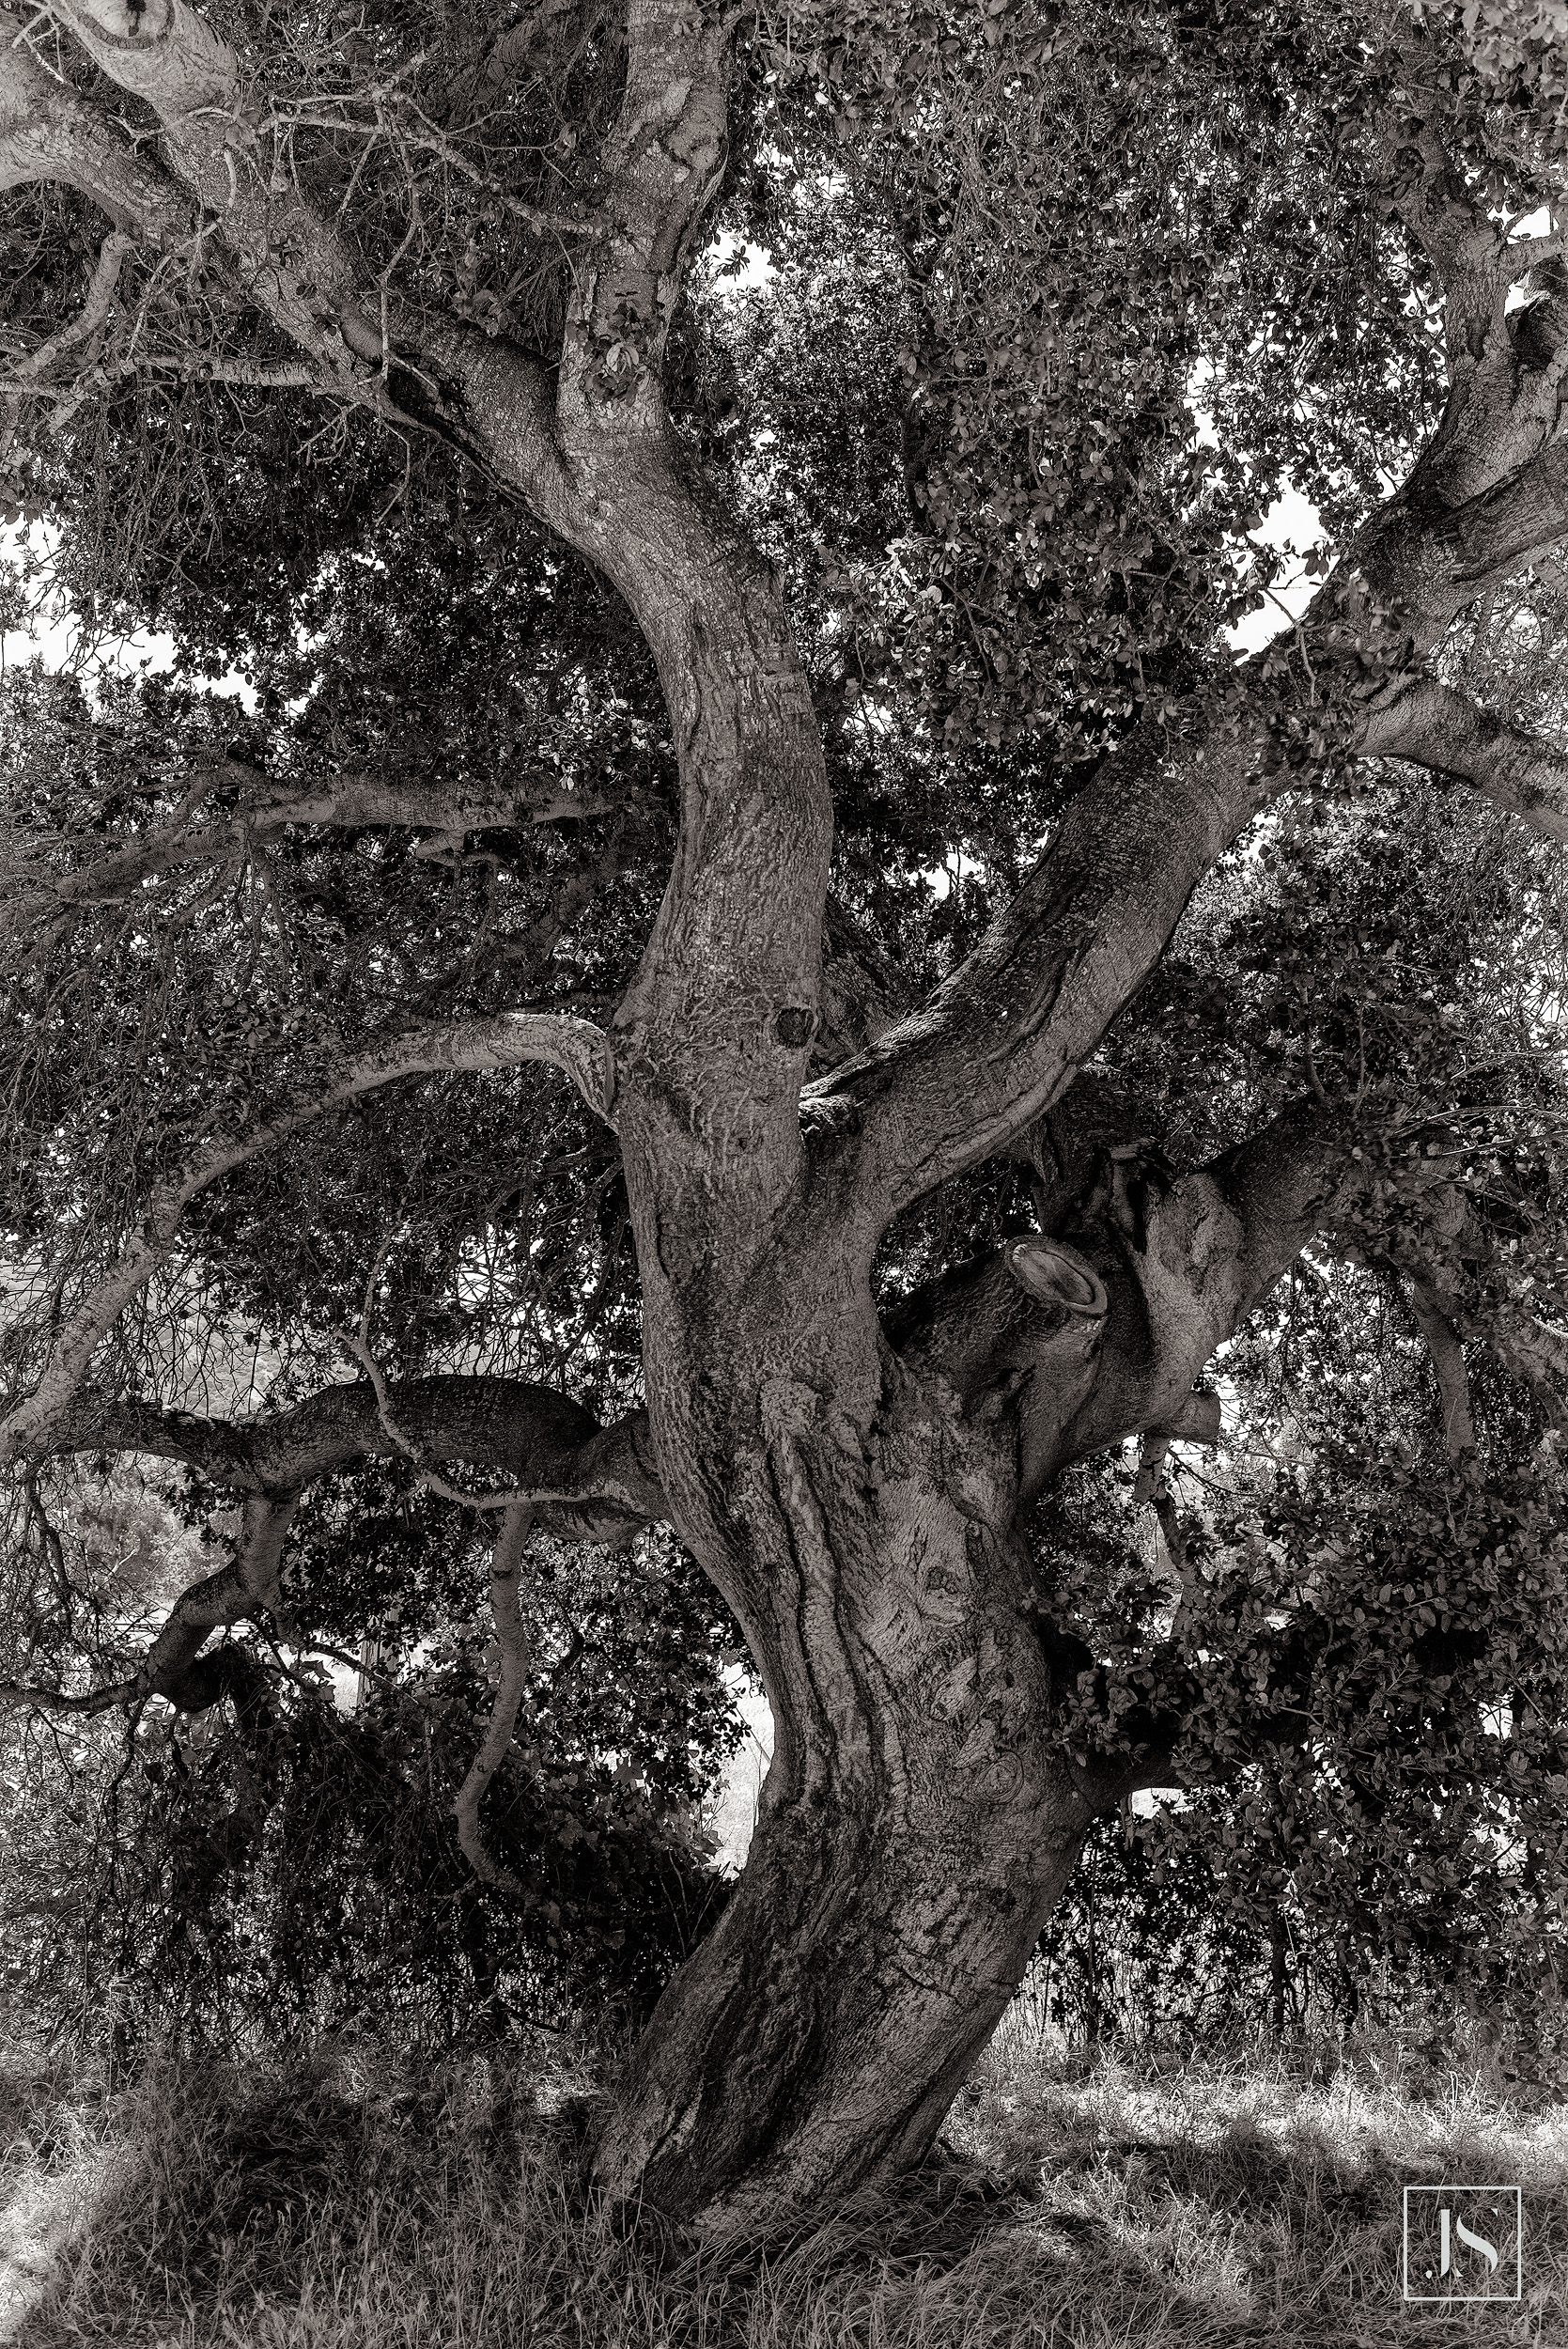 Twisting Oak-Carmel Valley, CA-2014